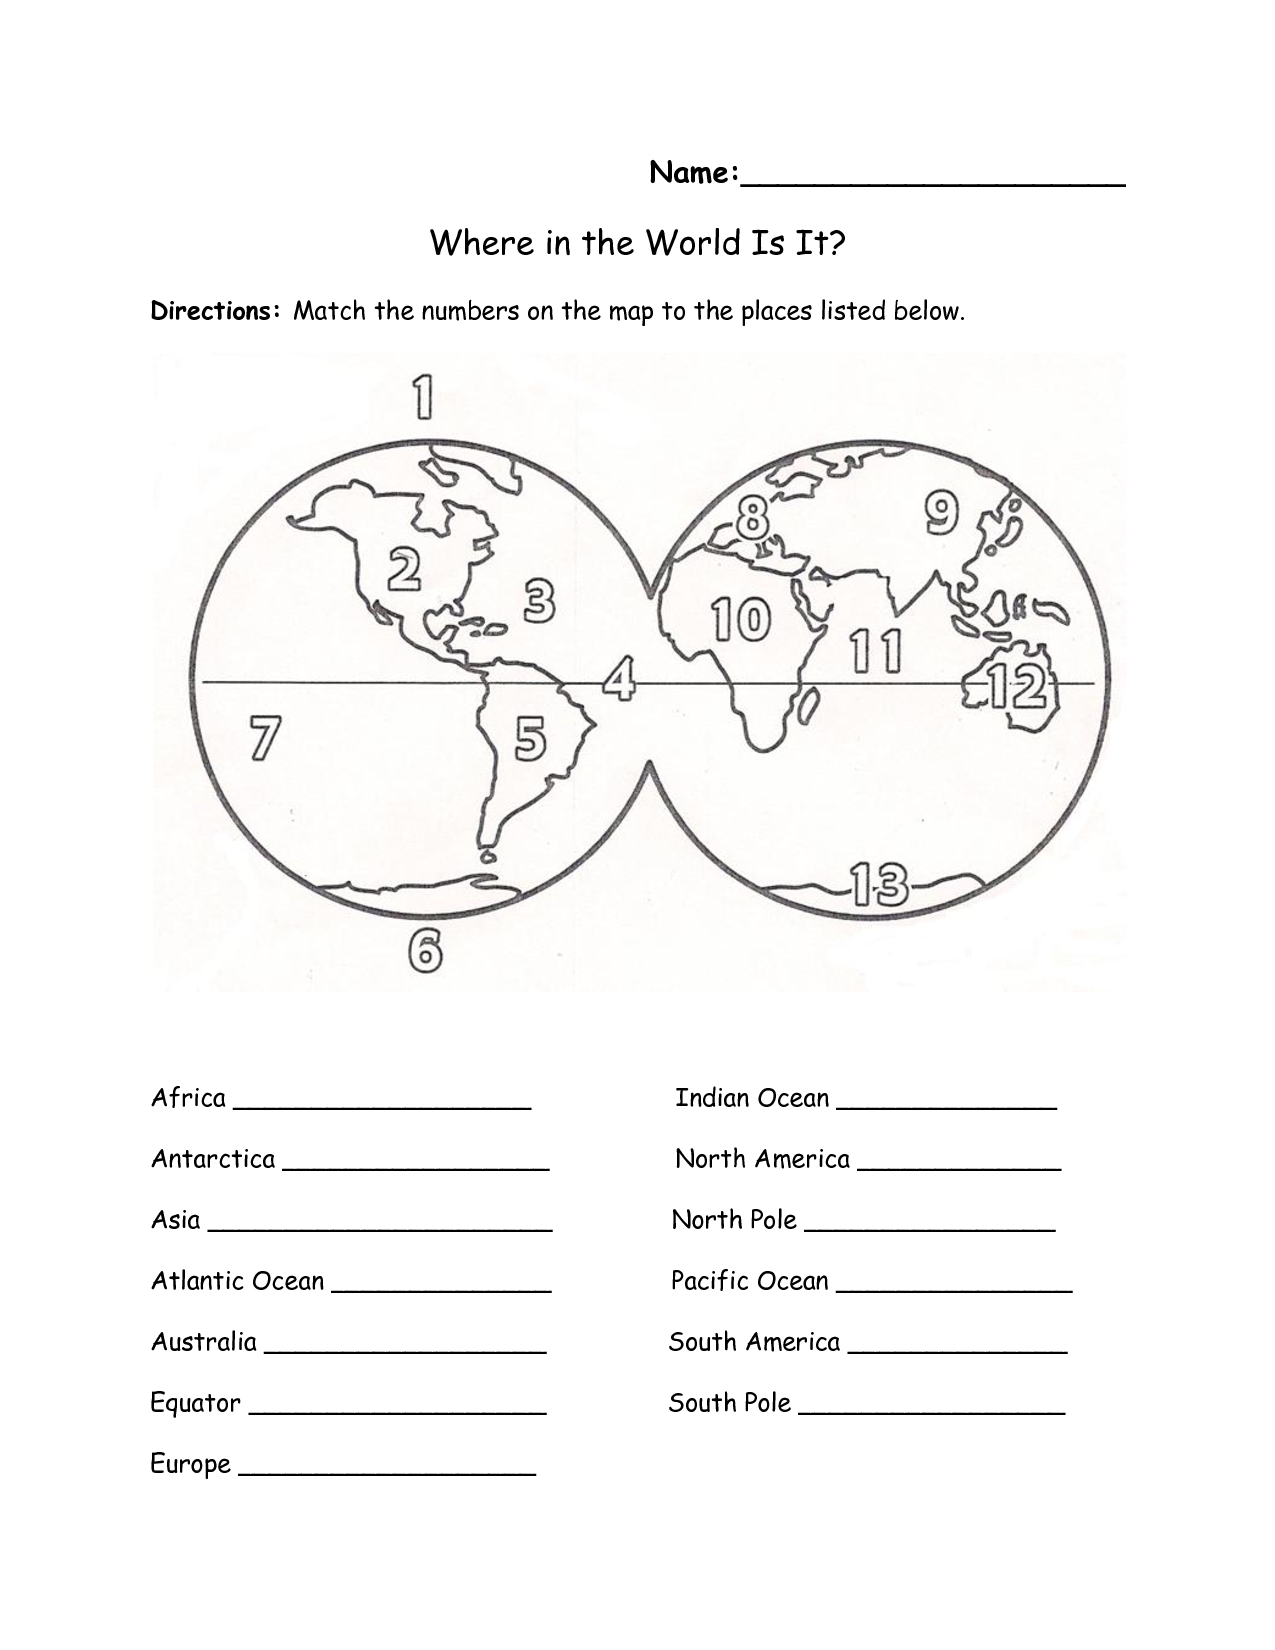 Worksheet The Physical World Continents And Oceans Worksheet search continents and oceans google on pinterest